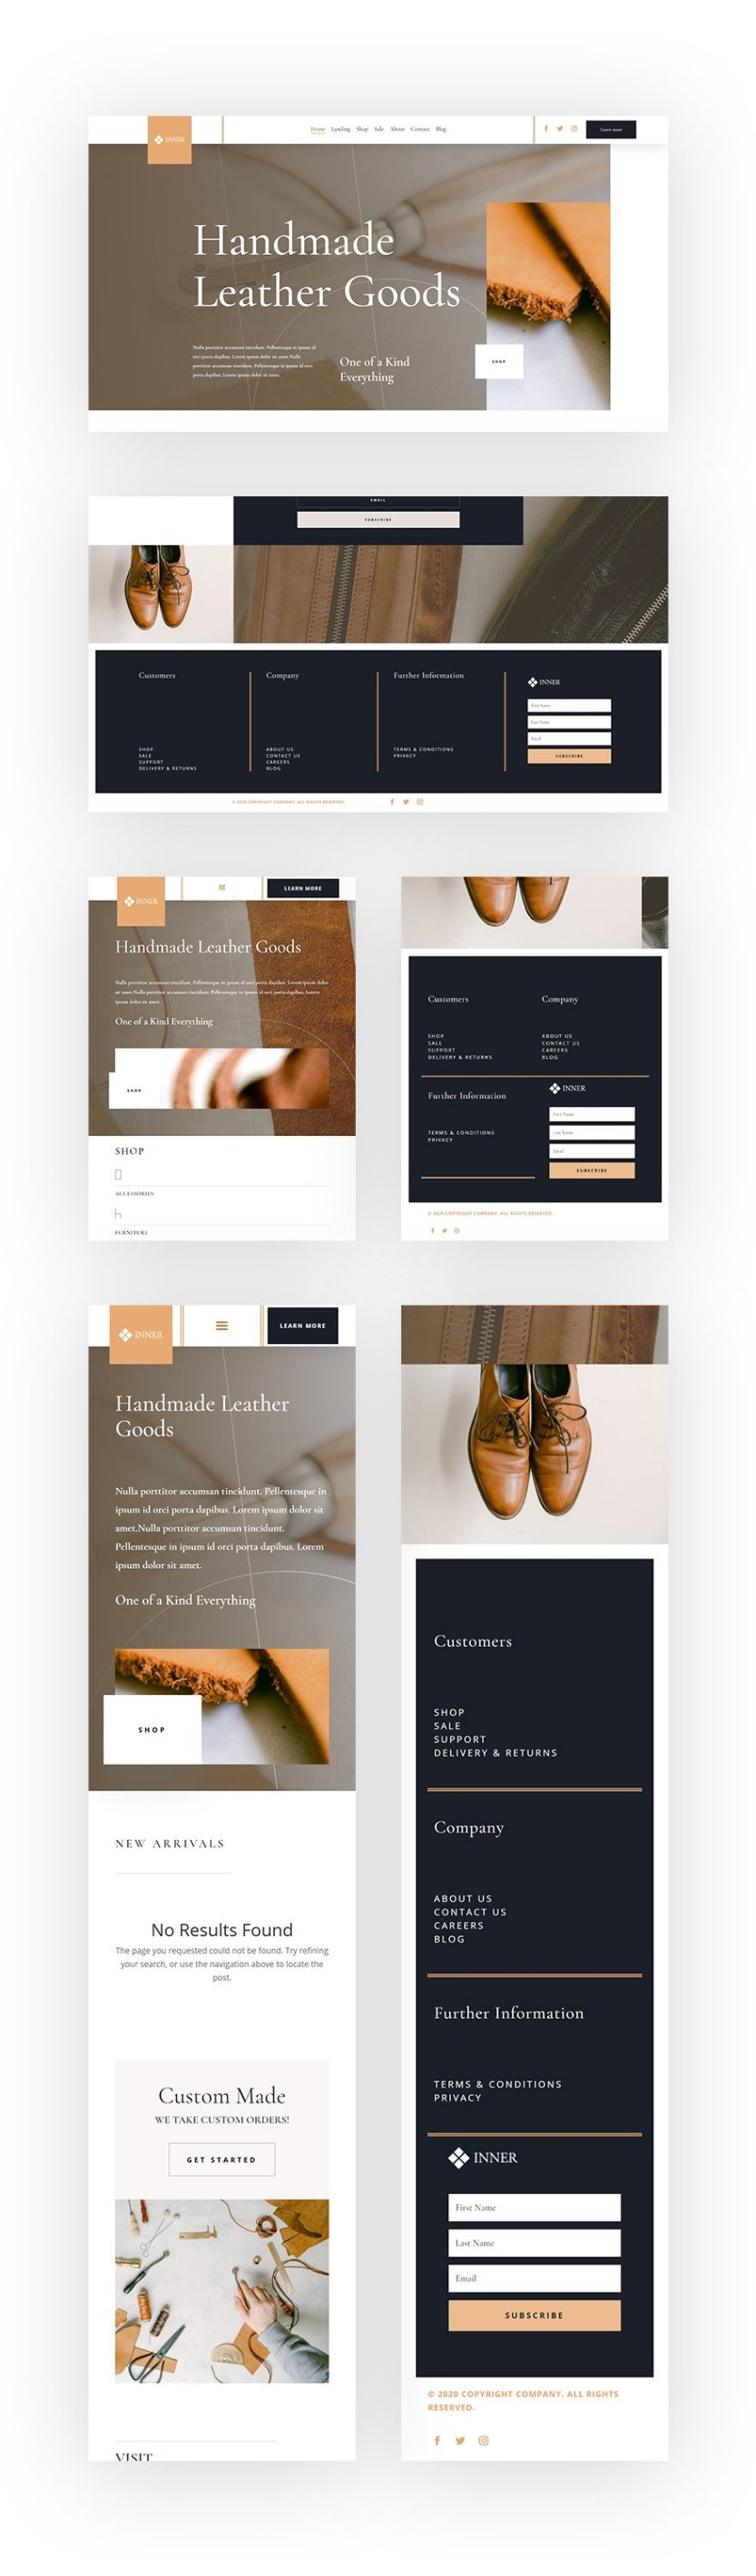 header footer template leather company layout pack